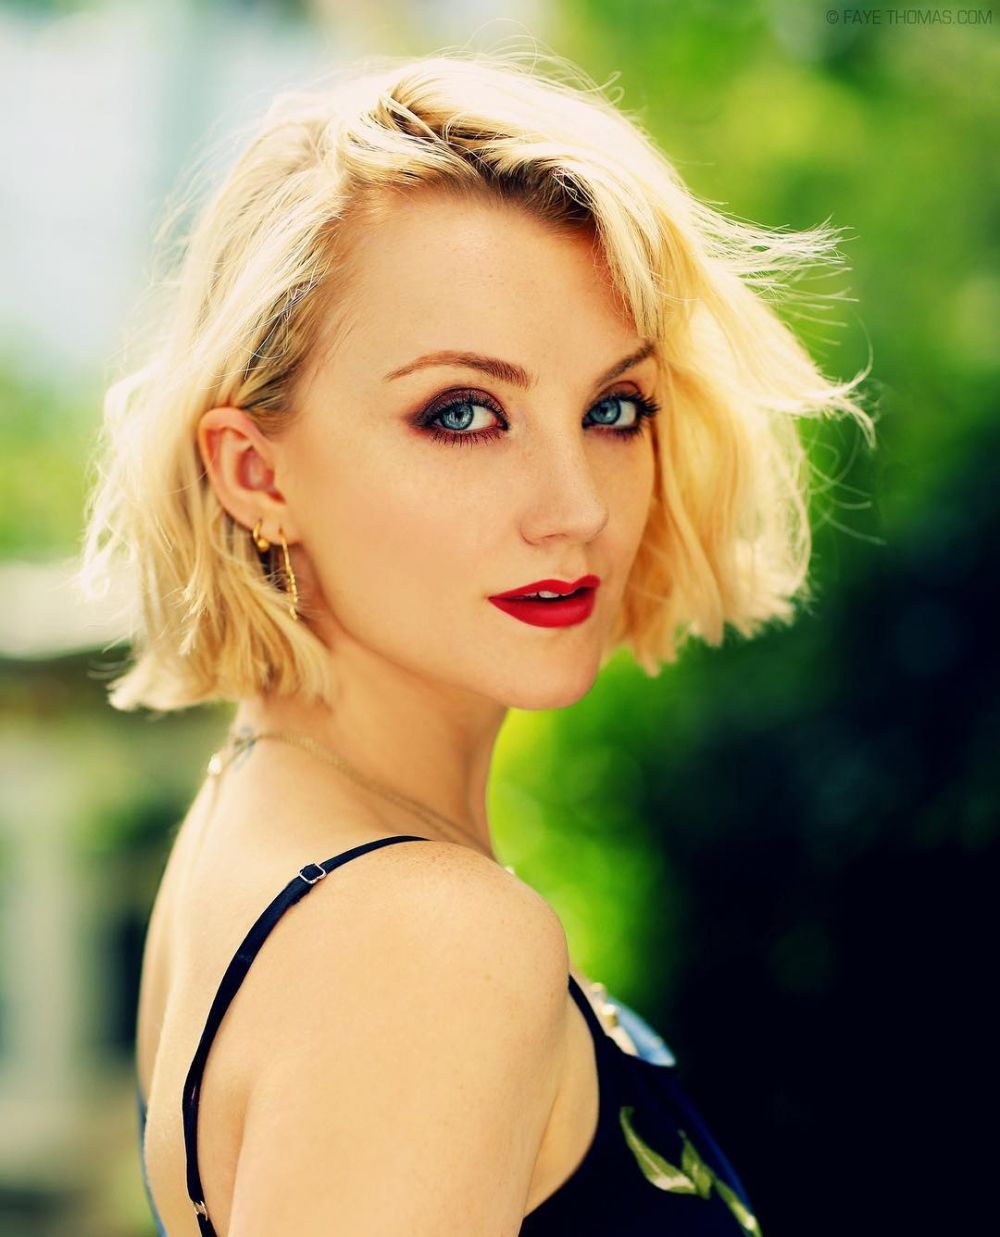 9 Potret Terbaru Evanna Lynch, Pemeran Luna Lovegood di Harry Potter